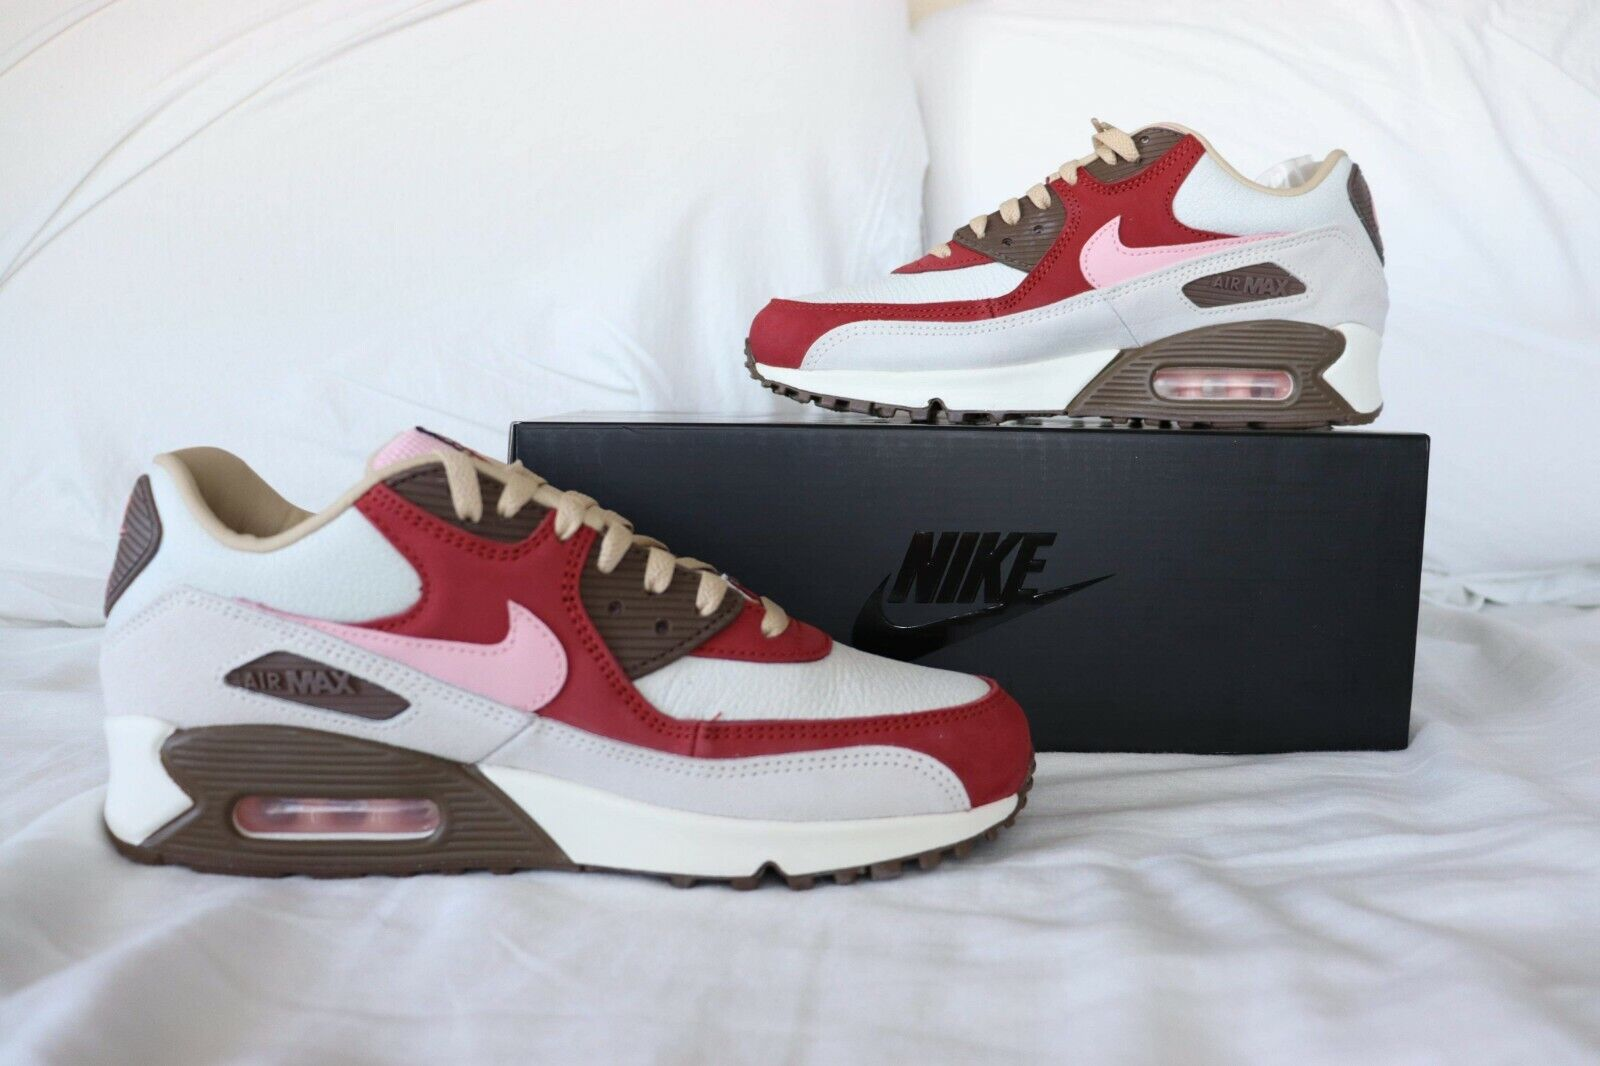 Size 8 - Nike Air Max 90 2021 x DQM Bacon for sale online | eBay